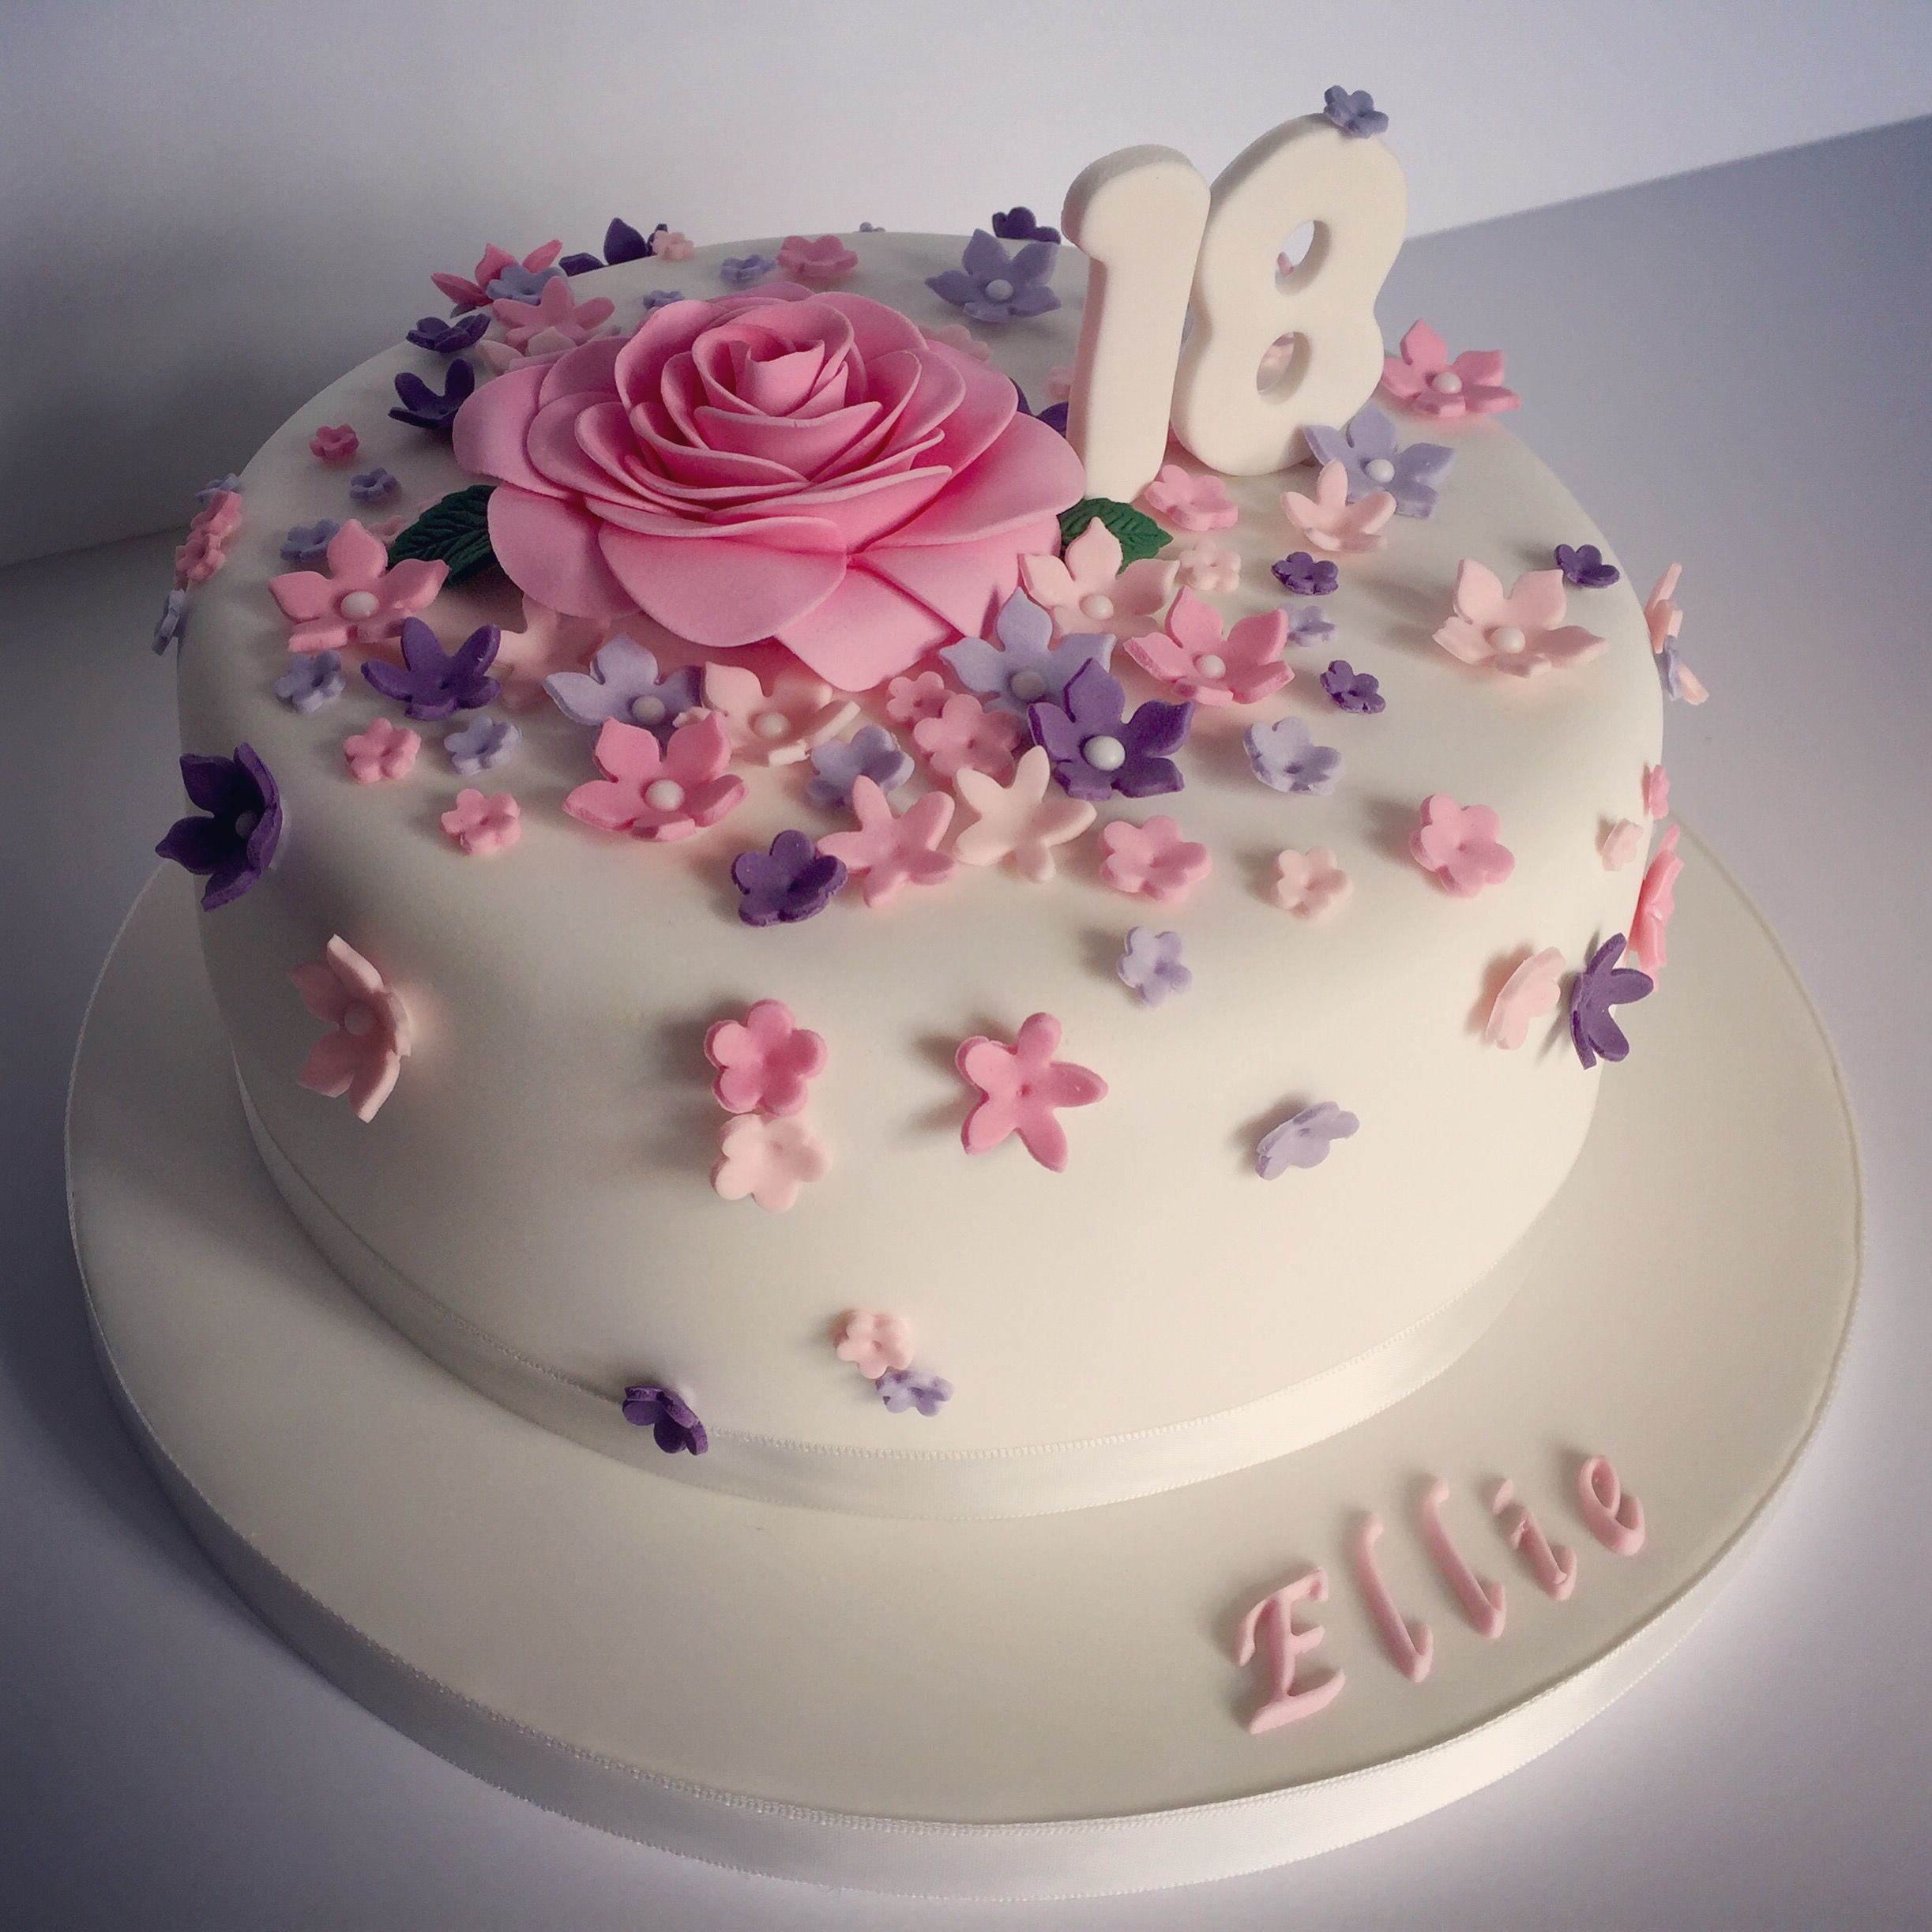 Pretty 18th Birthday Cake For Girl Design By Elina Prawito